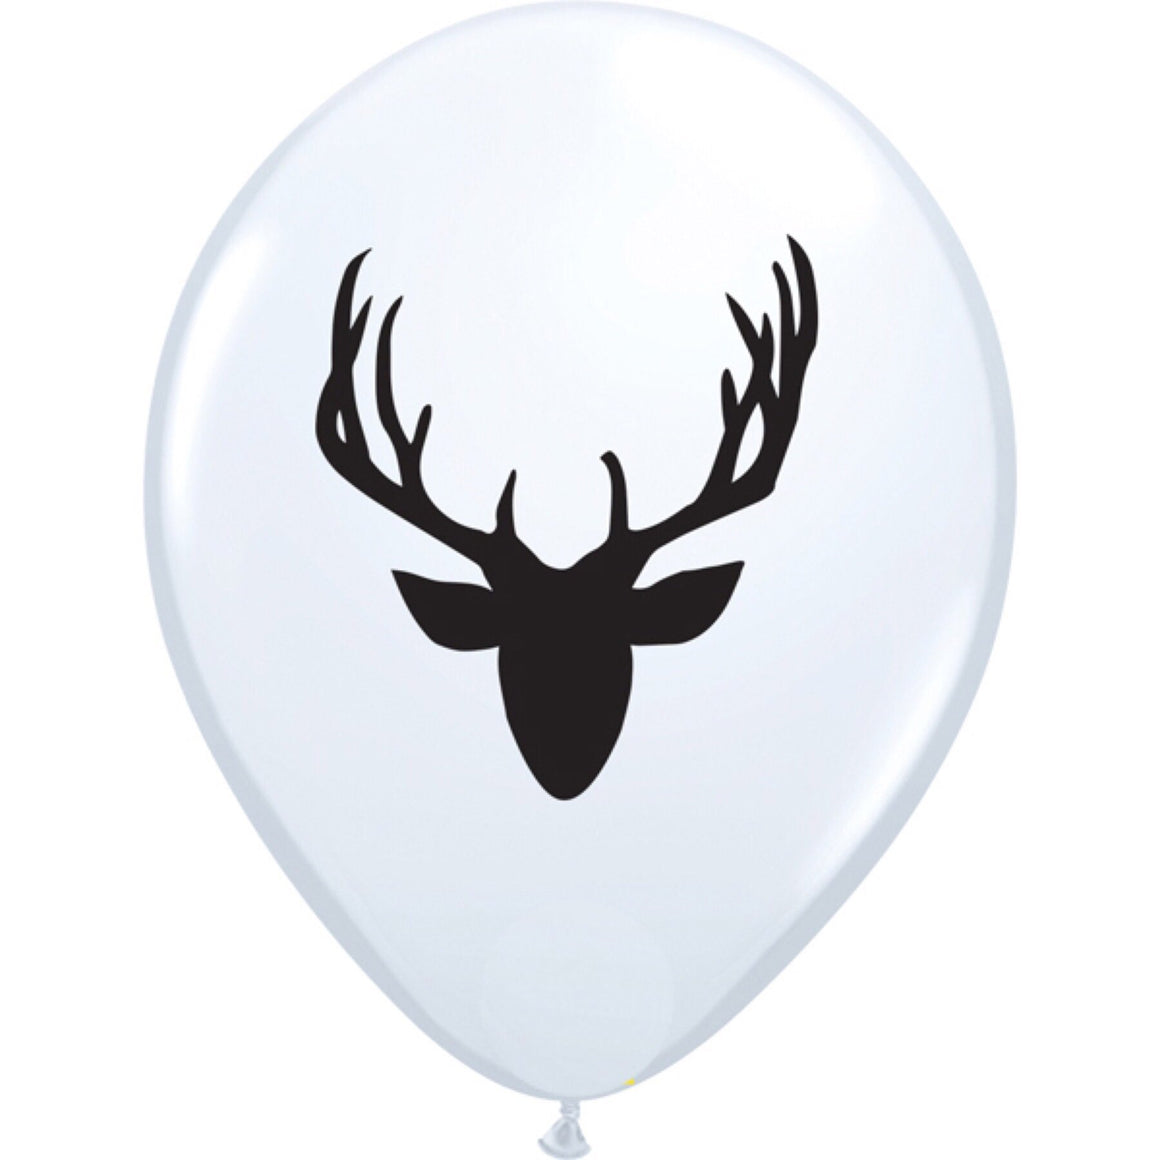 "BALLOON BAR - ANIMAL STAGS HEAD BLACK ON WHITE 11"", Balloons, QUALATEX - Bon + Co. Party Studio"